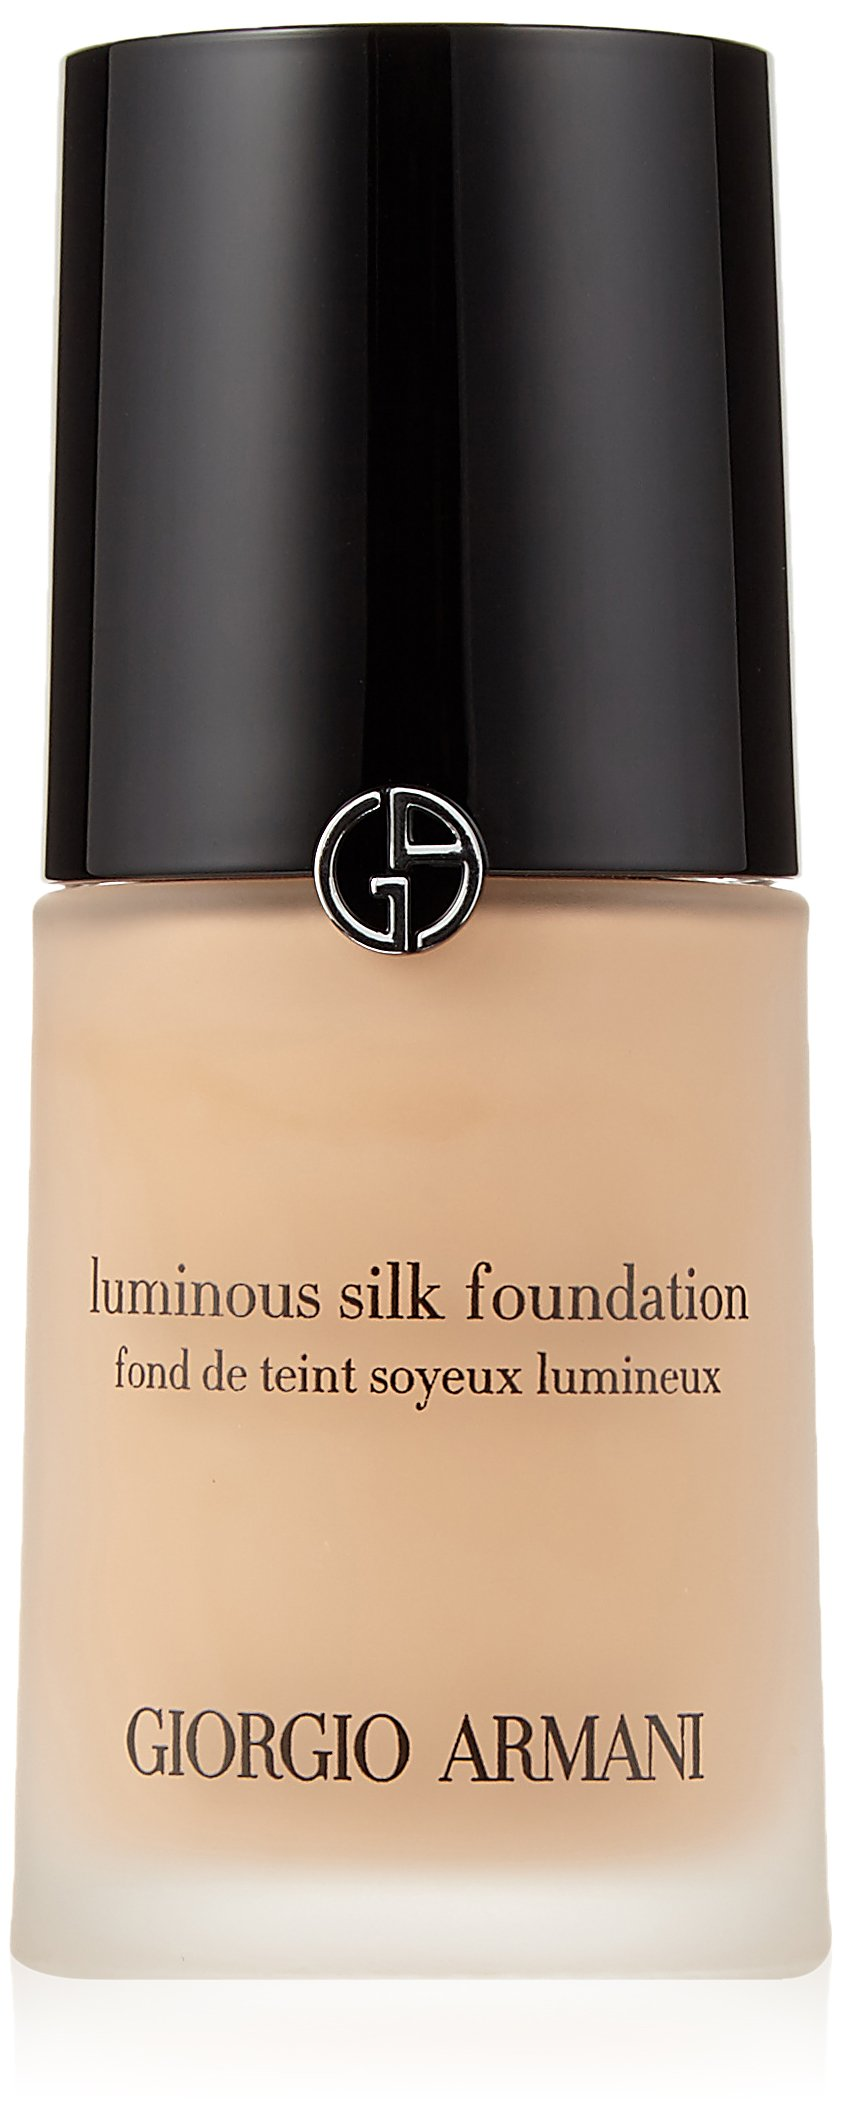 Giorgio Armani Luminous Silk Foundation, No. 4.5 Sand, 1 Ounce by GIORGIO ARMANI (Image #1)